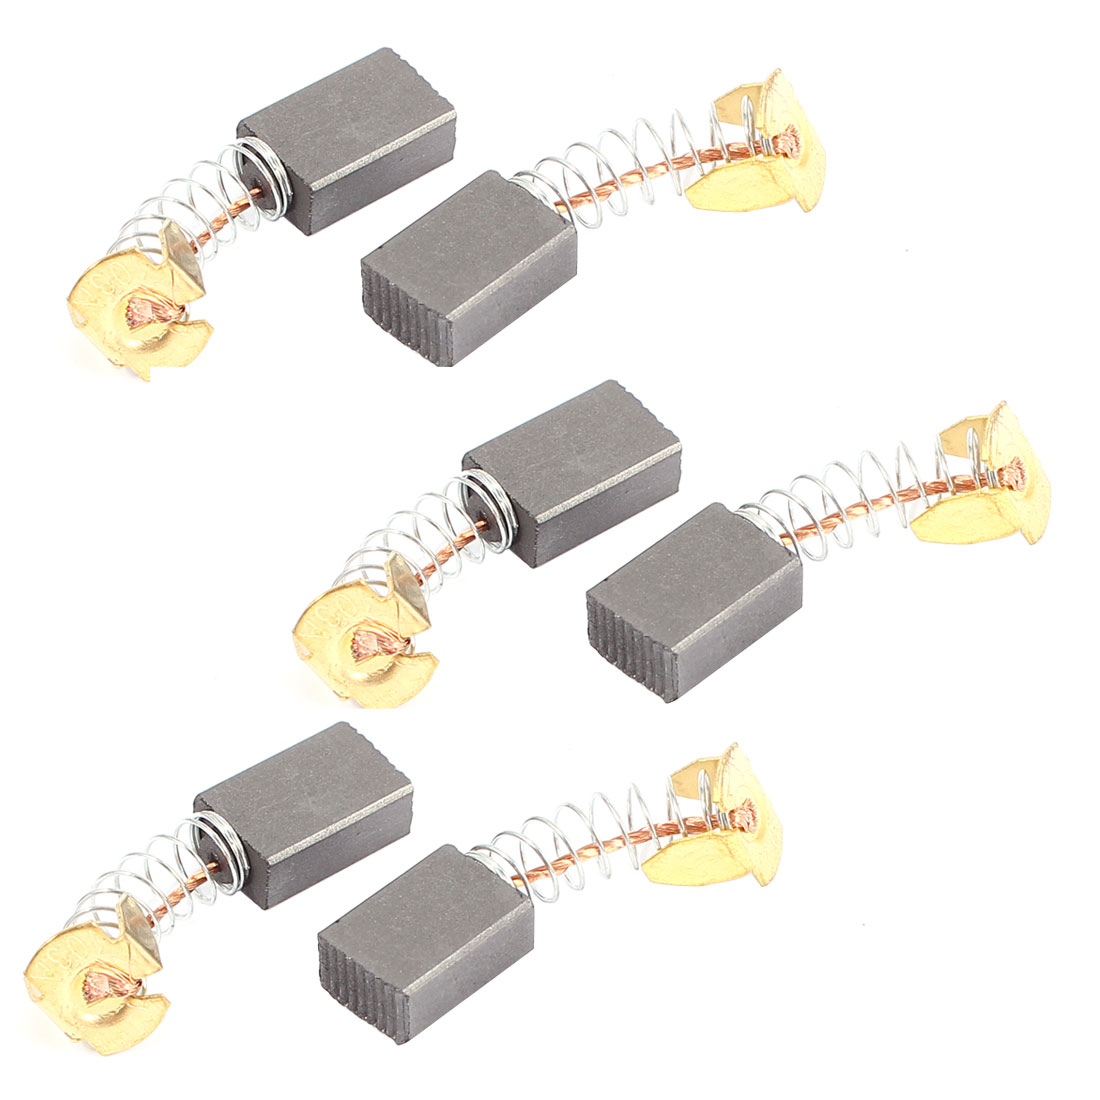 6Pcs Carbon Electric Motor Brushes 15mm x 10mm x 6mm For Drill Screwdriver